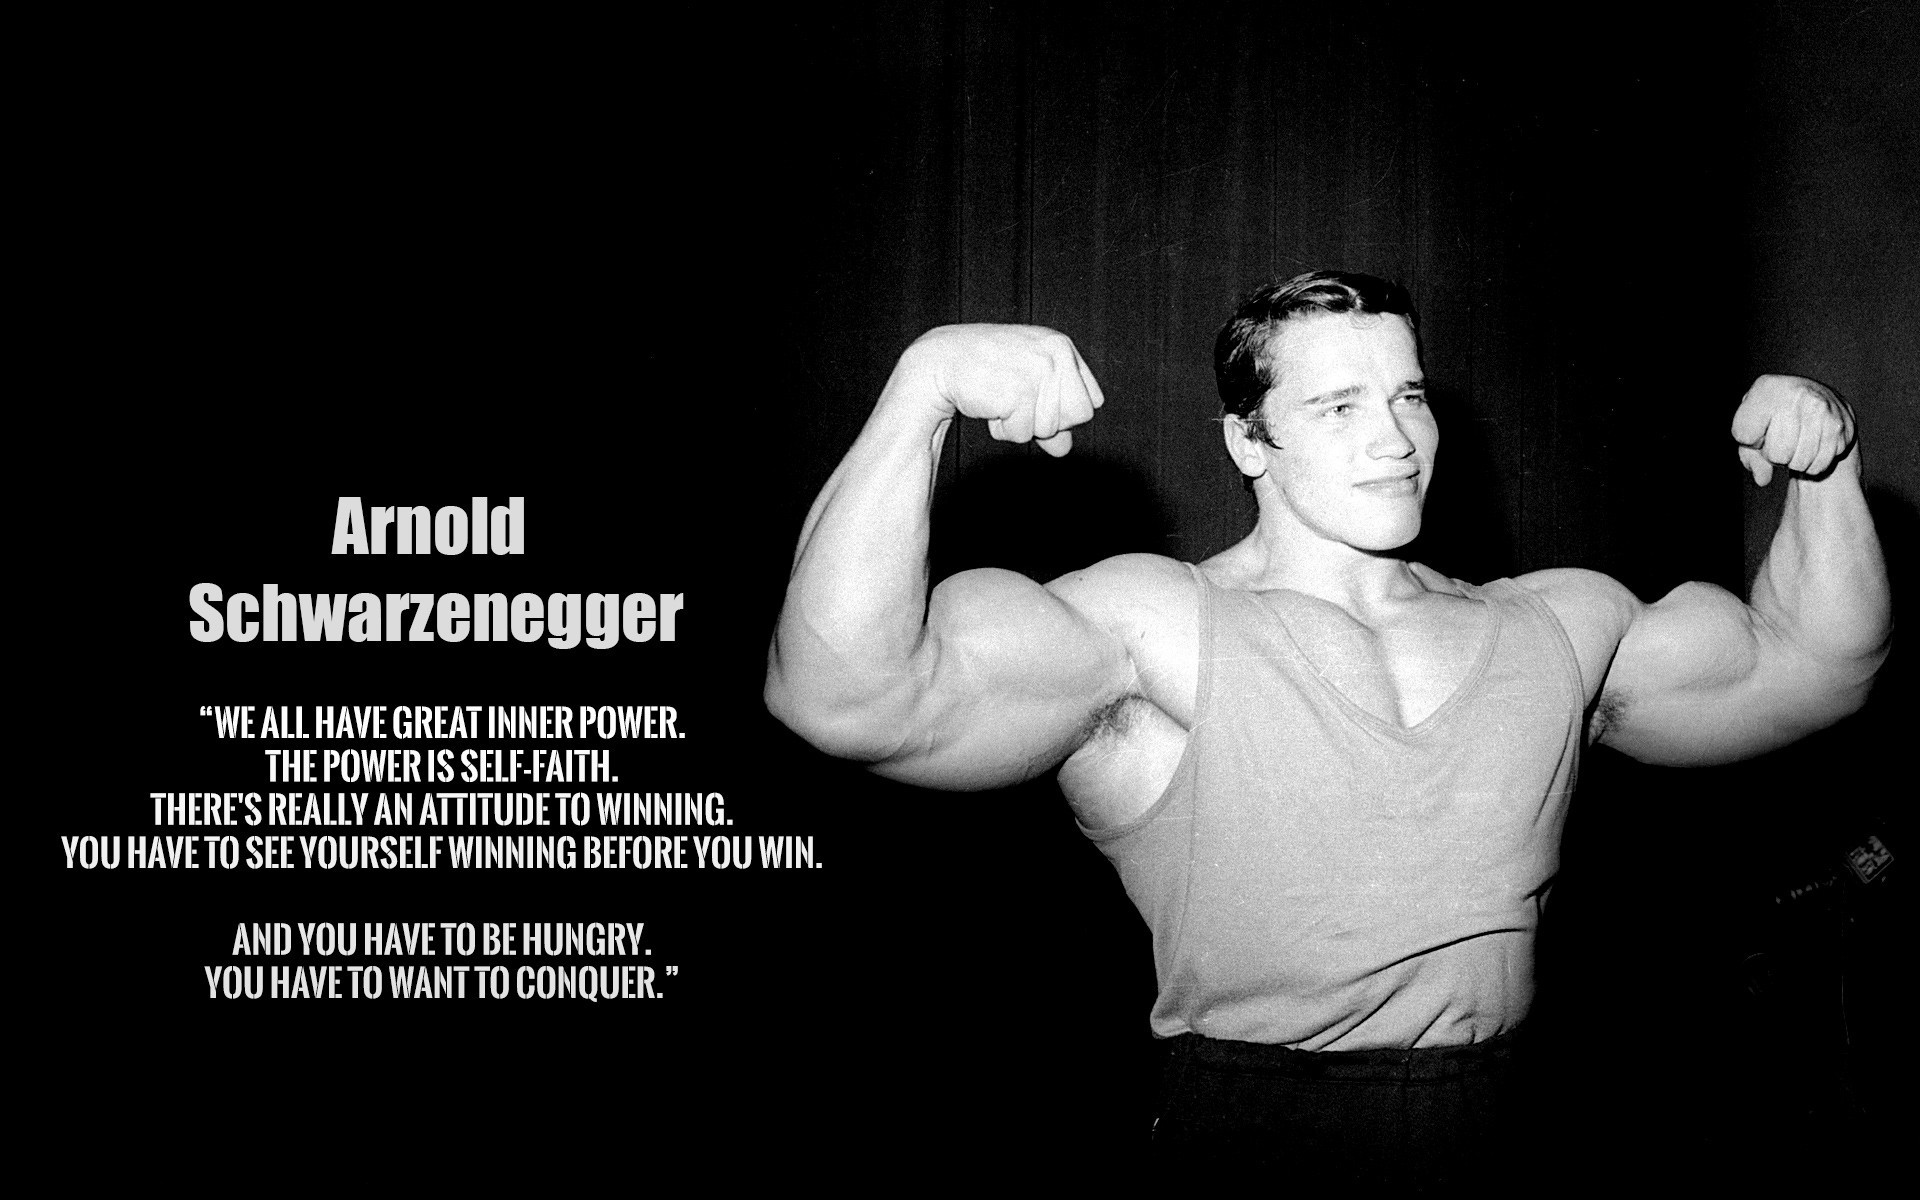 arnold schwarzenegger bodybuilding wallpapers posters and